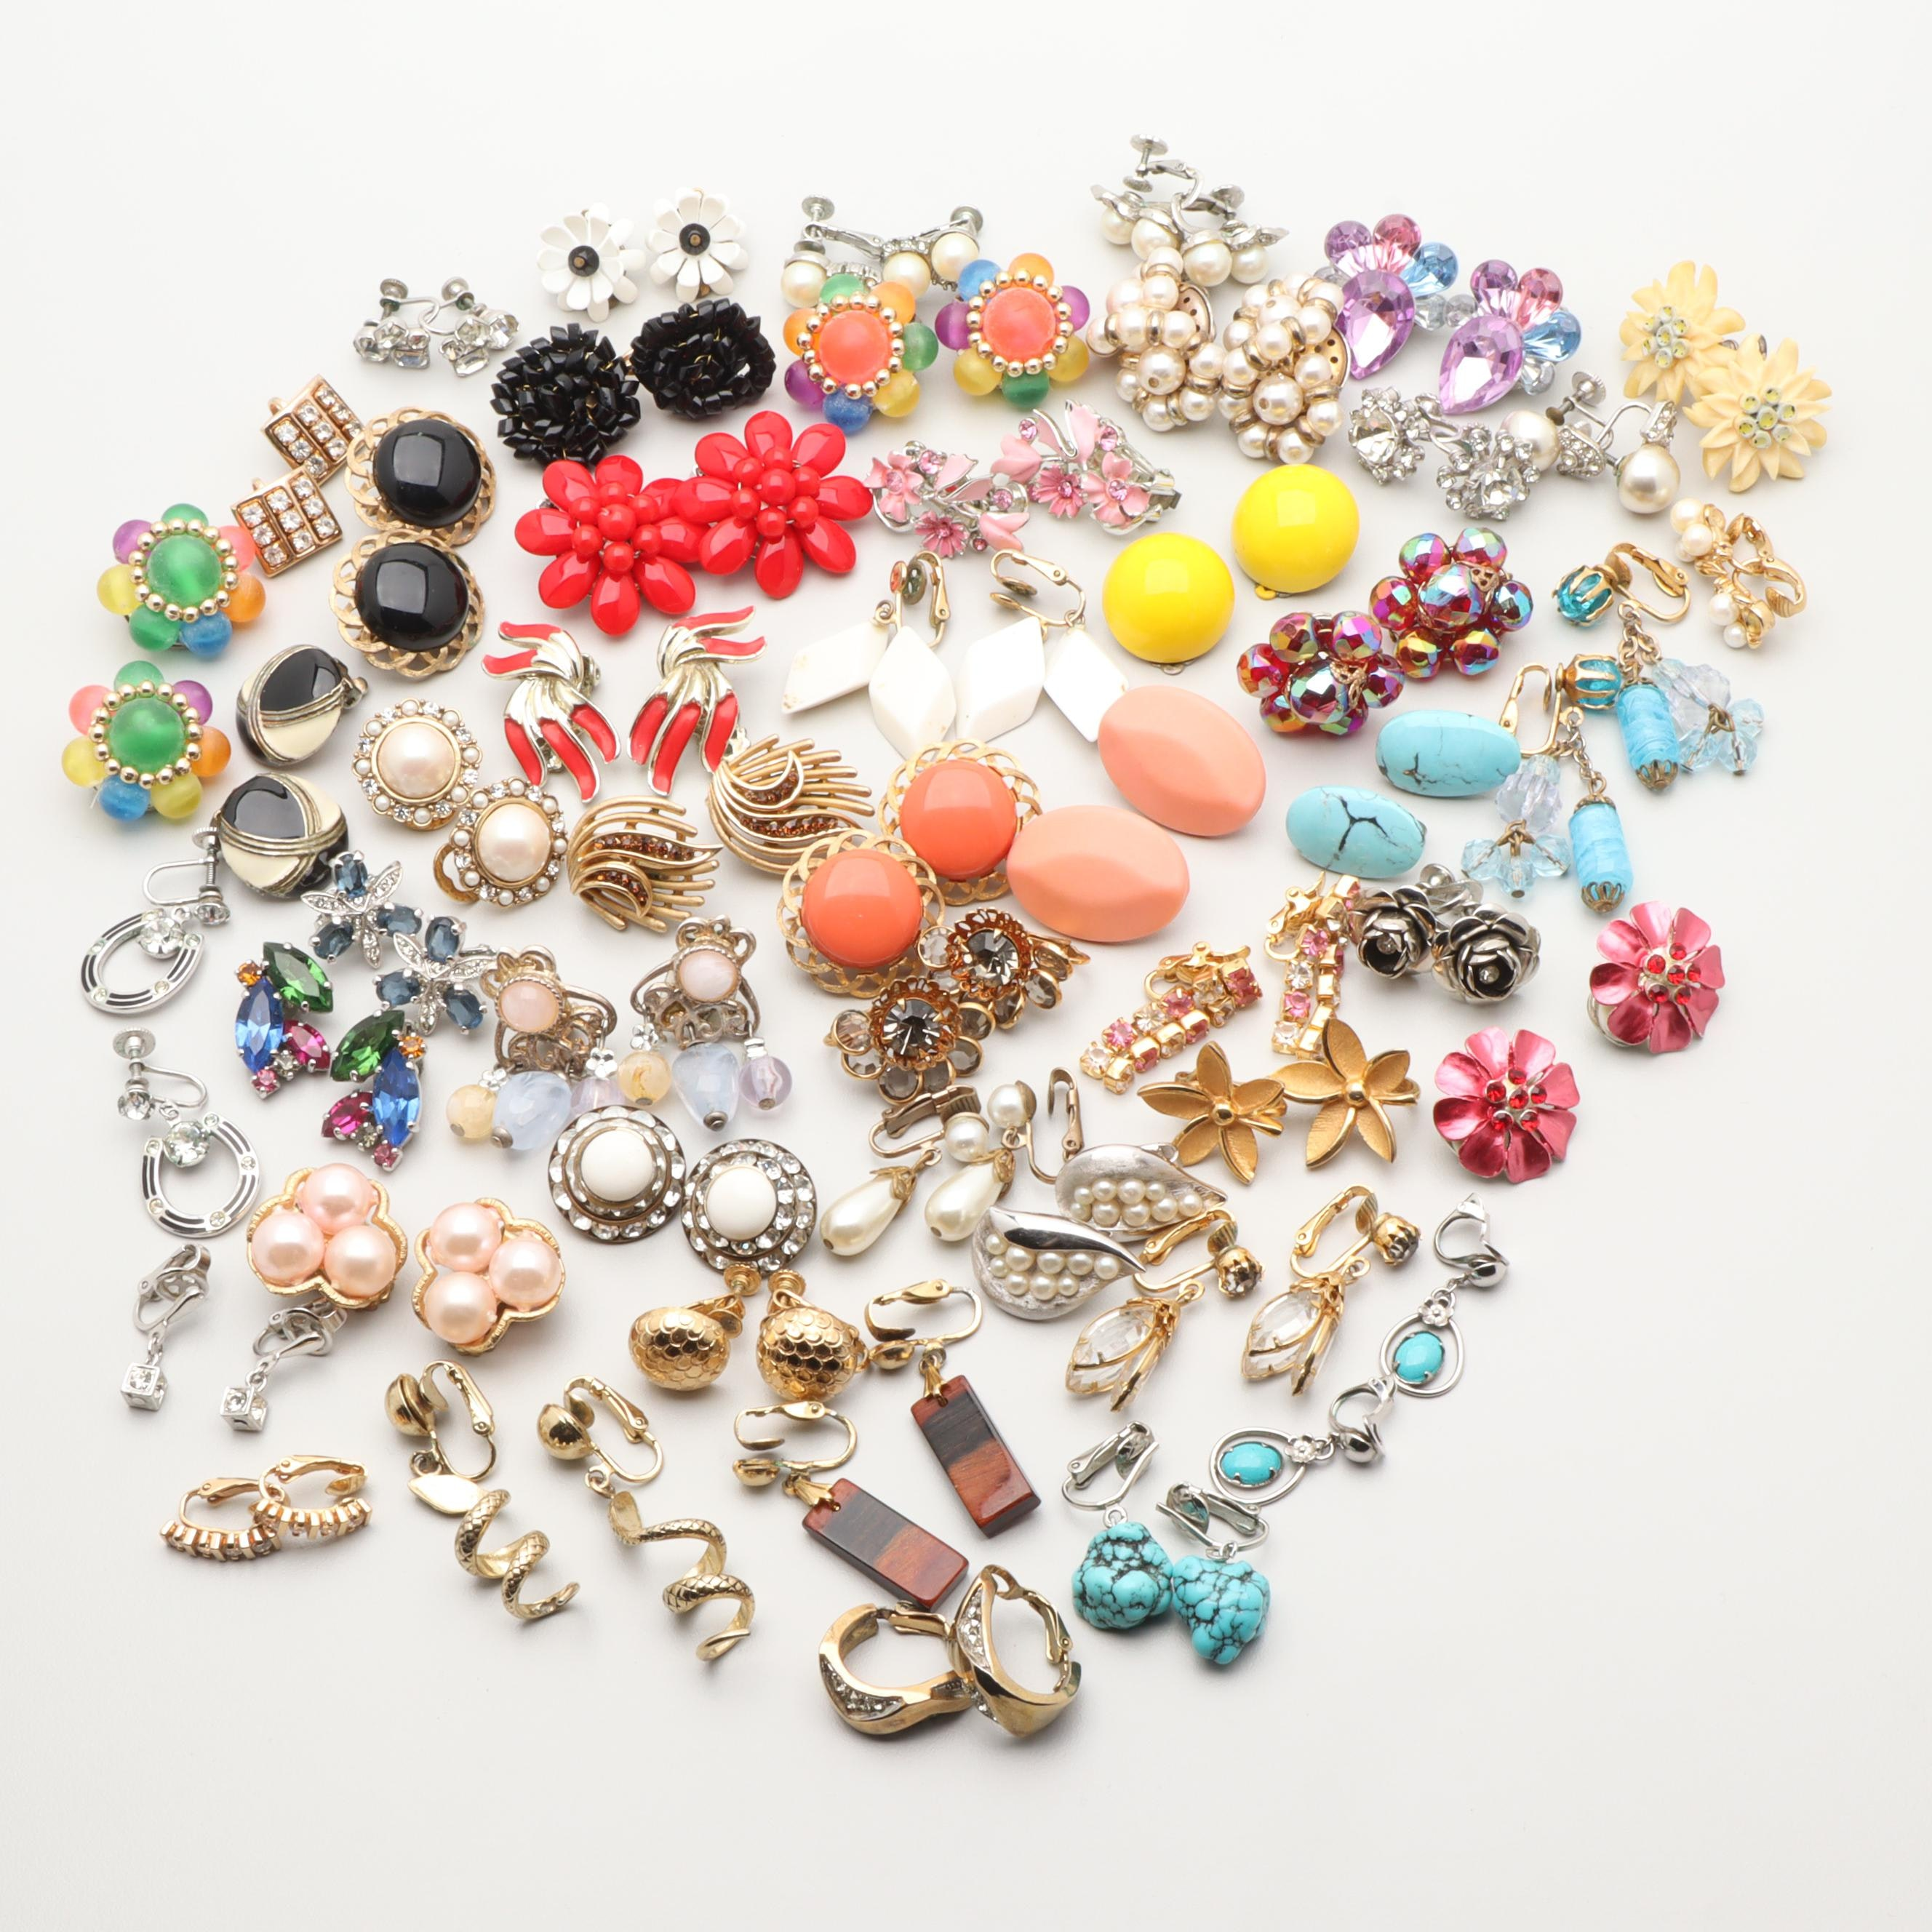 Generous Assortment of Earrings Including Sterling Silver and Imitation Pearls